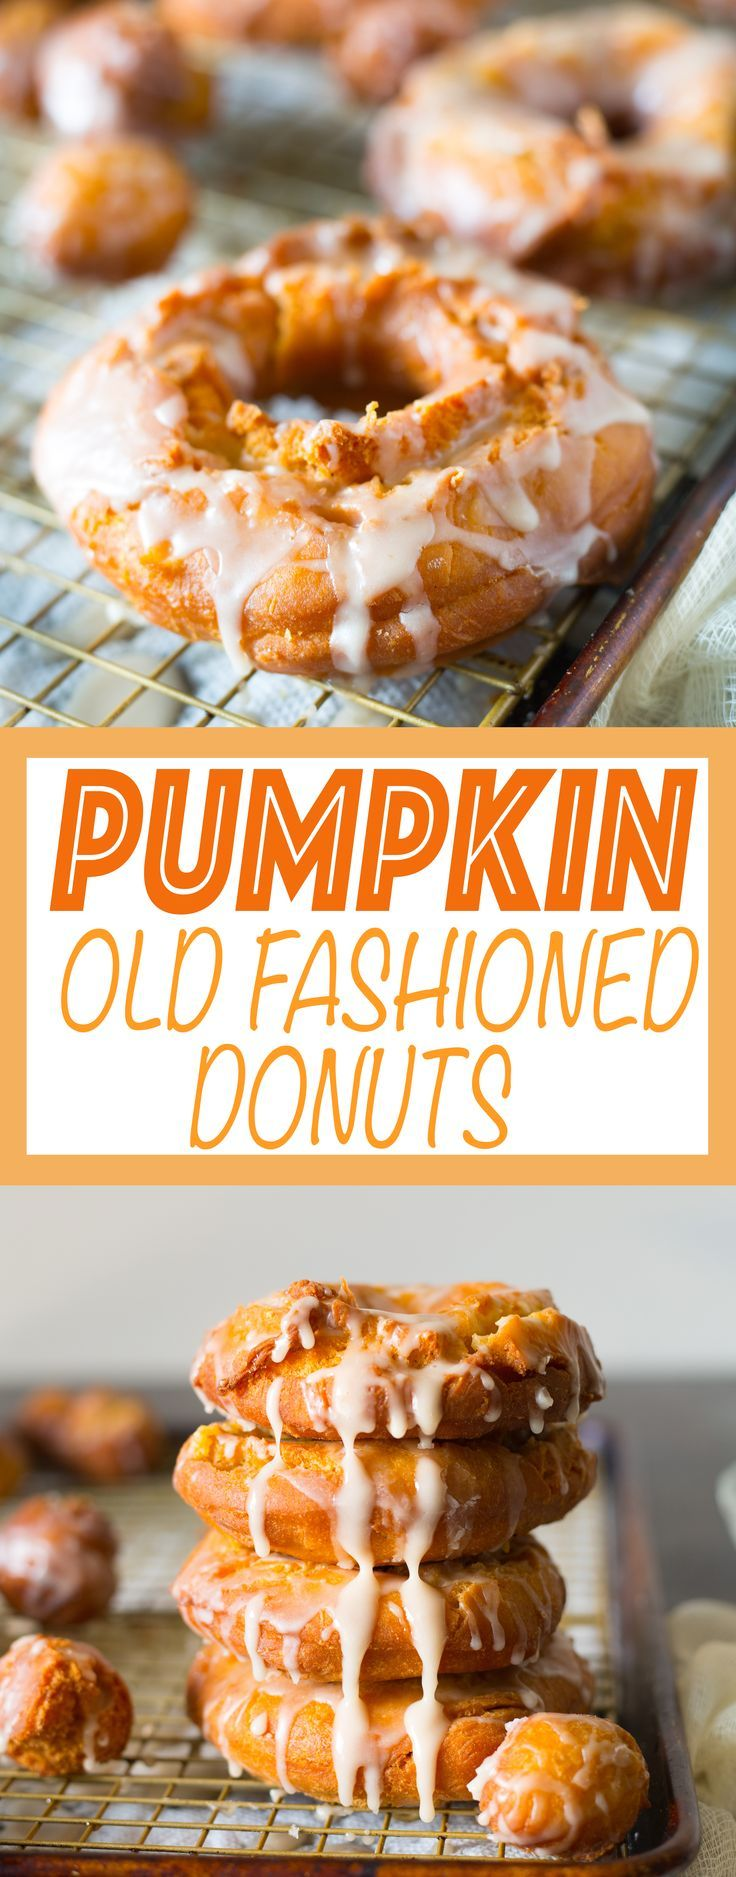 Classic old fashioned donuts with a pumpkin spin to it! Old fashioned donut recipe with pumpkin puree and pumpkin pie spices!